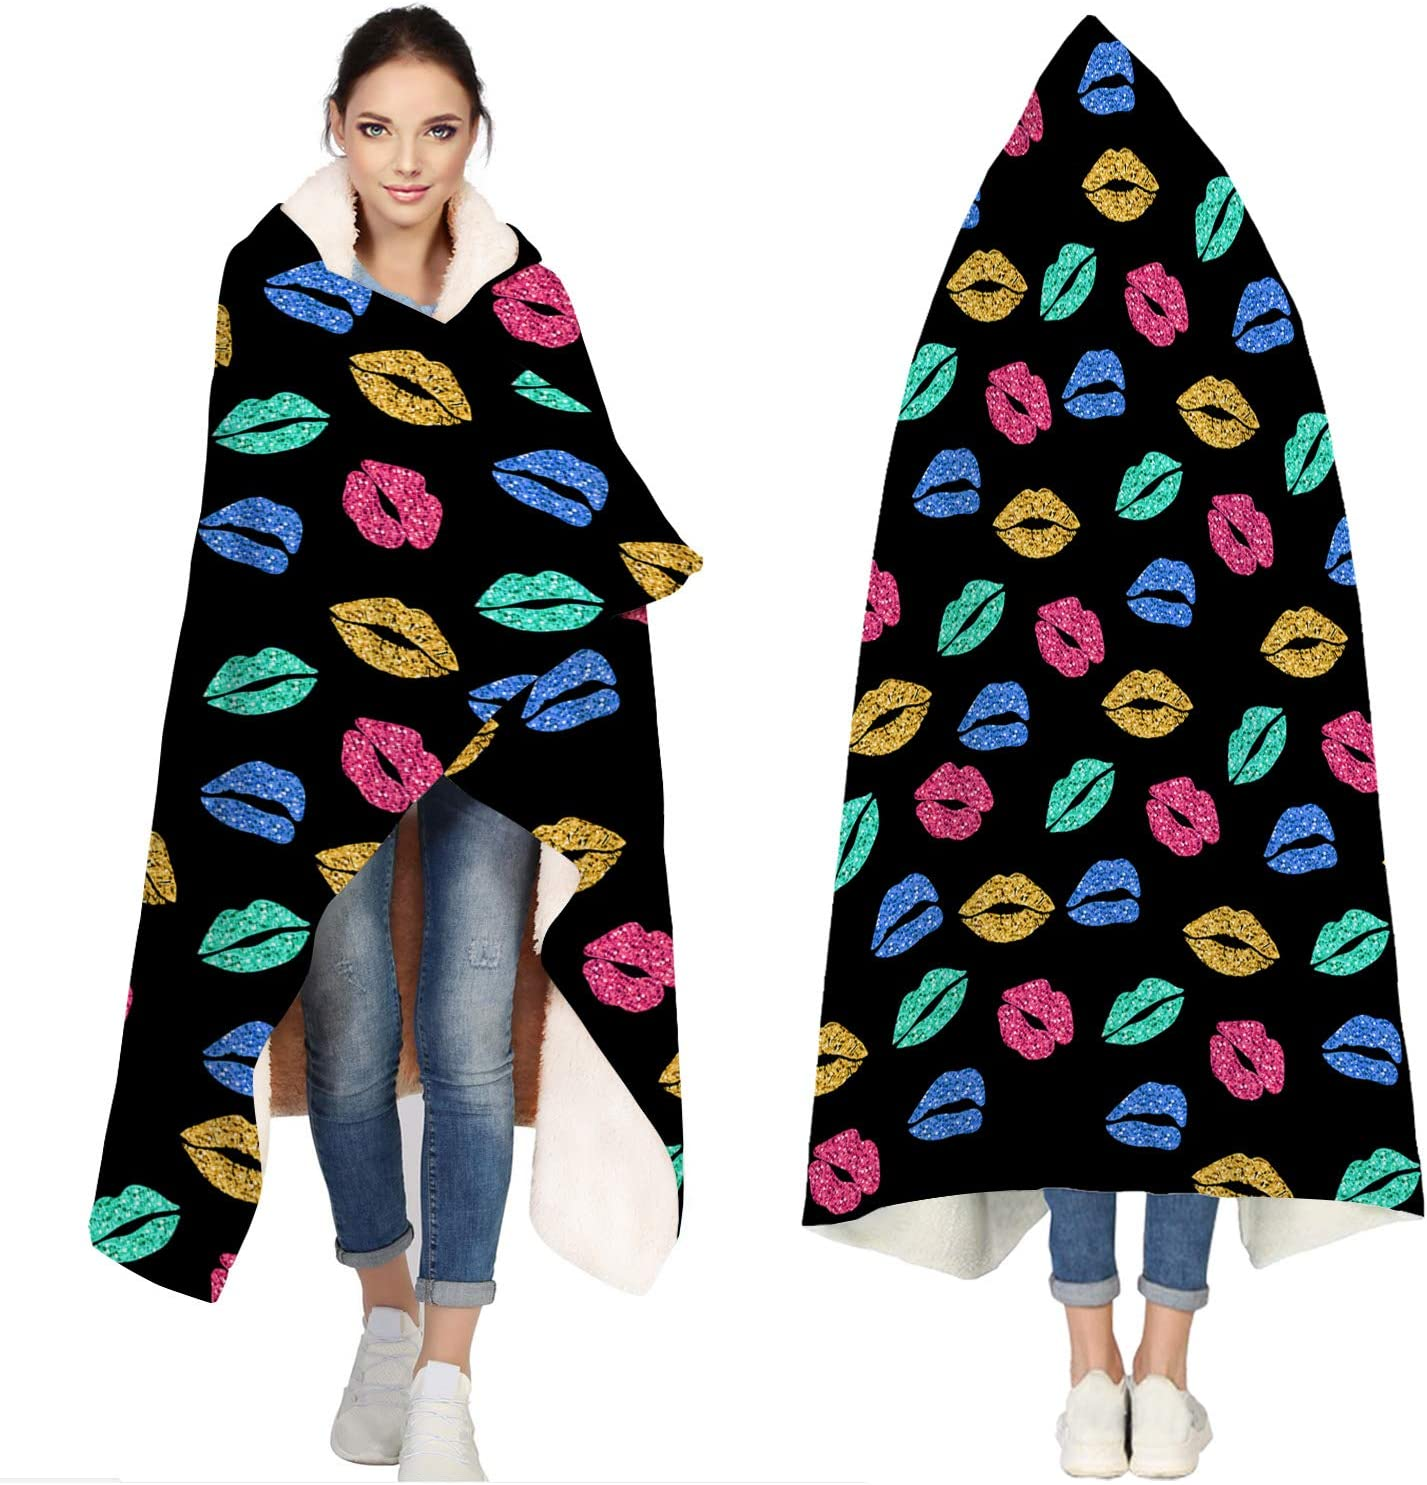 Hooded Blankets for Adults Sexy Lips Towel Black Beach Bath At the price of surprise H El Paso Mall -